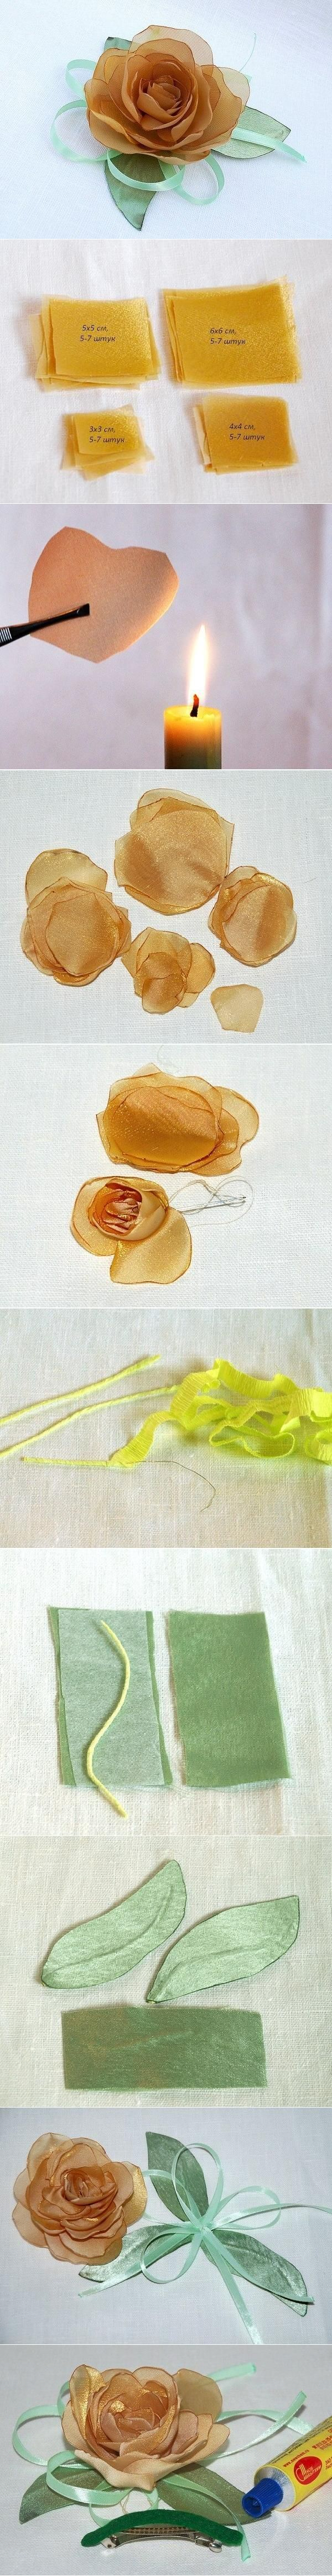 DIY Pretty Hairpin Rose                                                                                                                                                      More